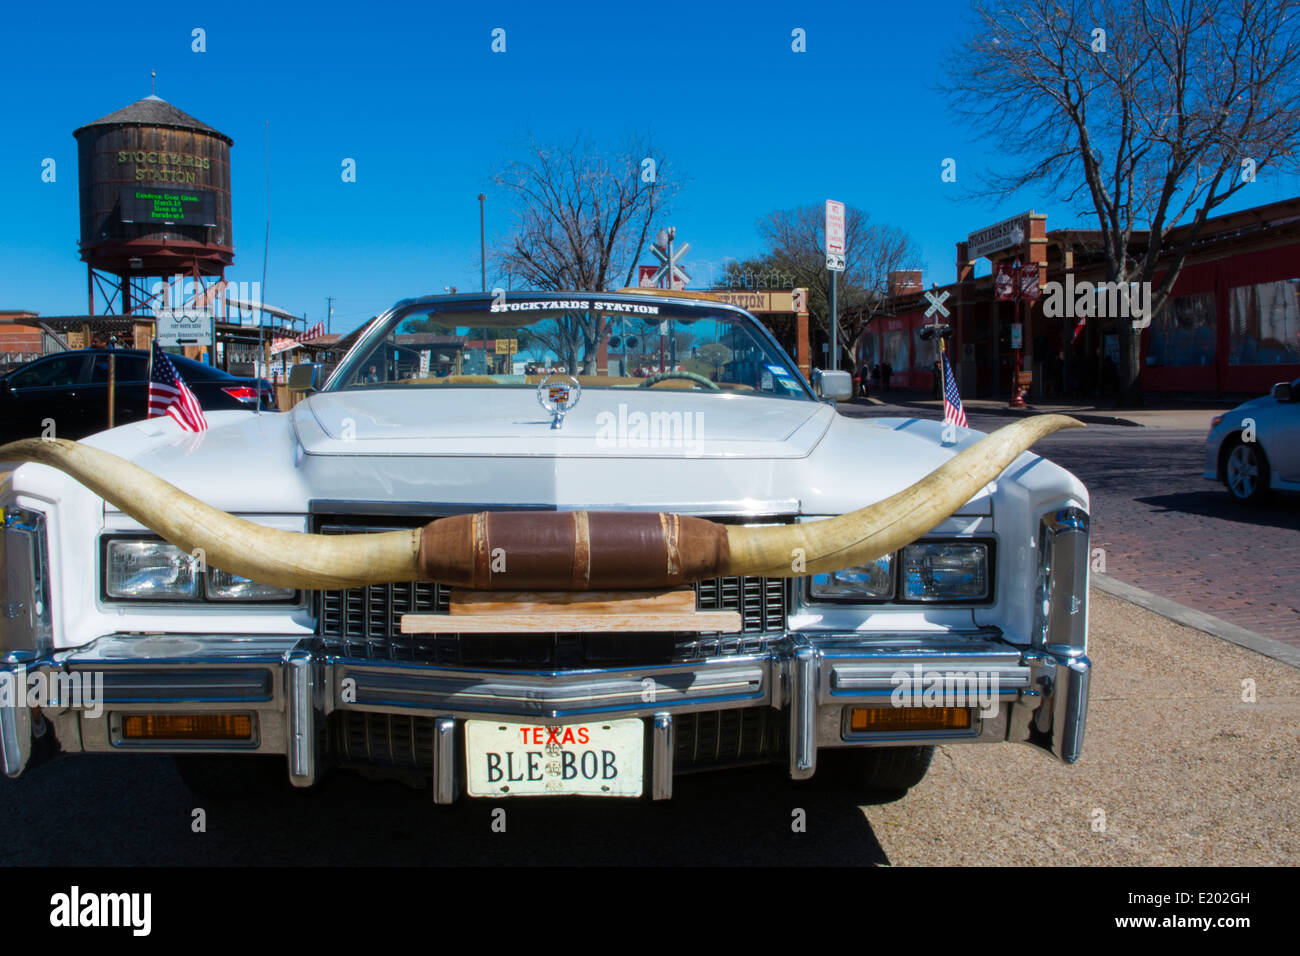 Ft Worth Texas Main Street Cadillac With Longhorns On Grill For Tourists  Near The Stockyard Famous For The Longhorn Herds